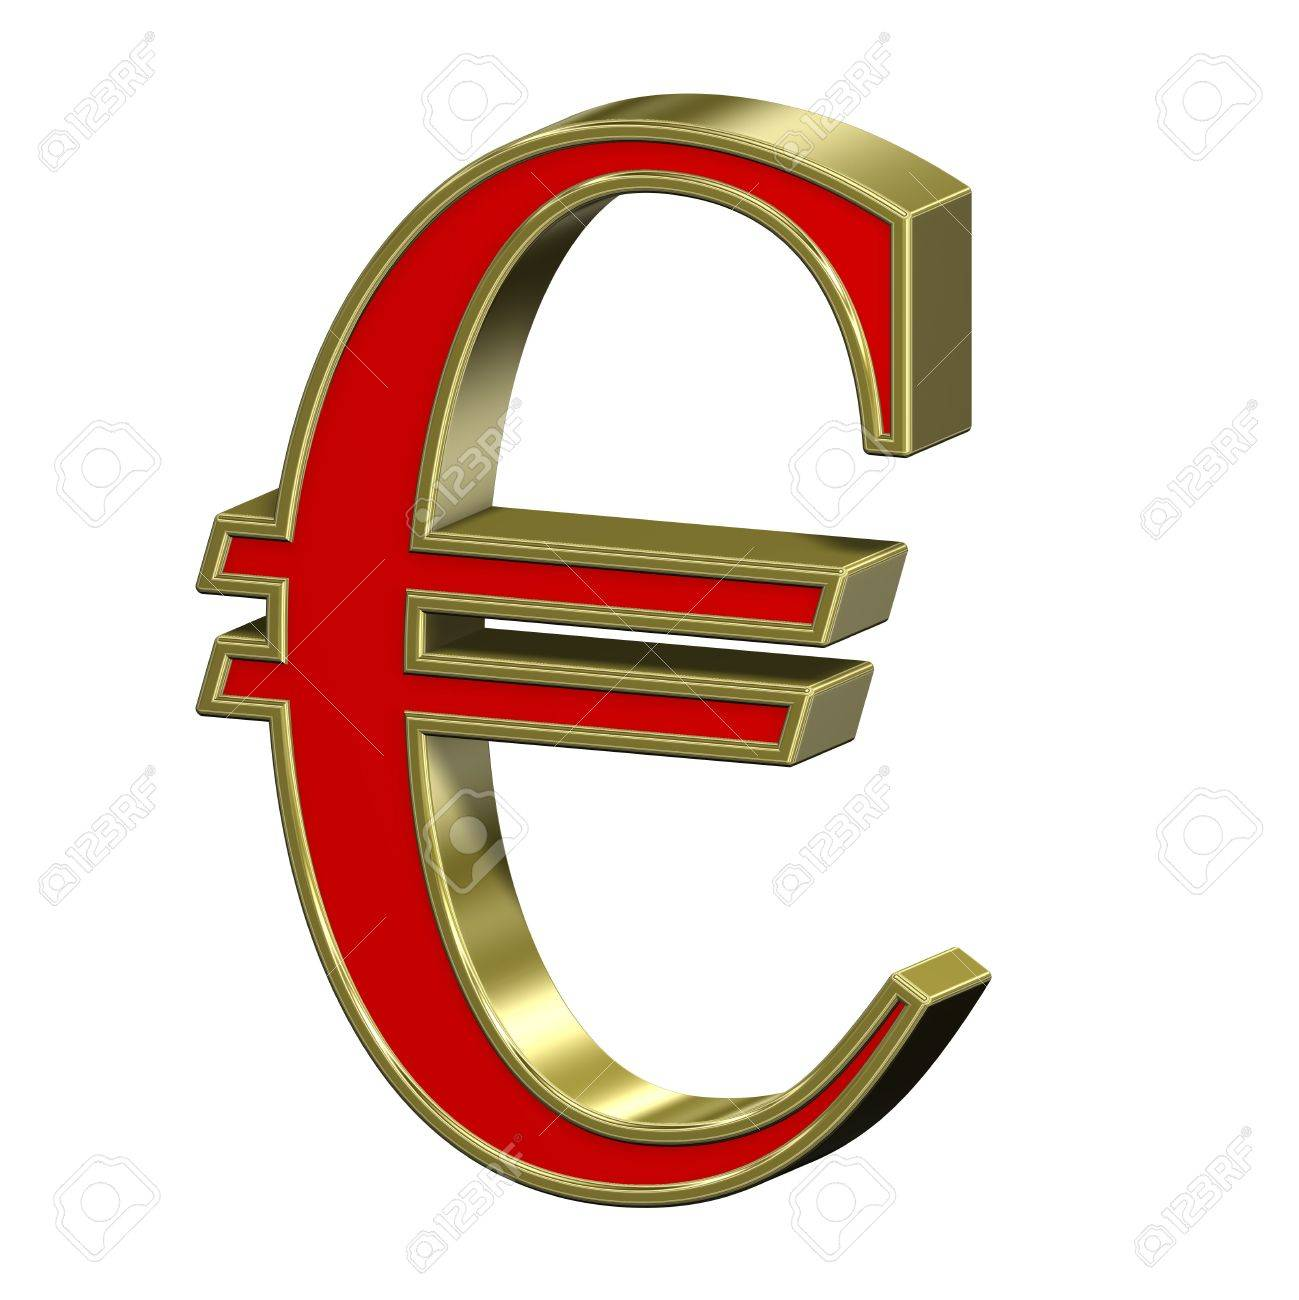 Euro sign from red with gold frame Roman alphabet set, isolated on white. Computer generated 3D photo rendering. Stock Photo - 6159711